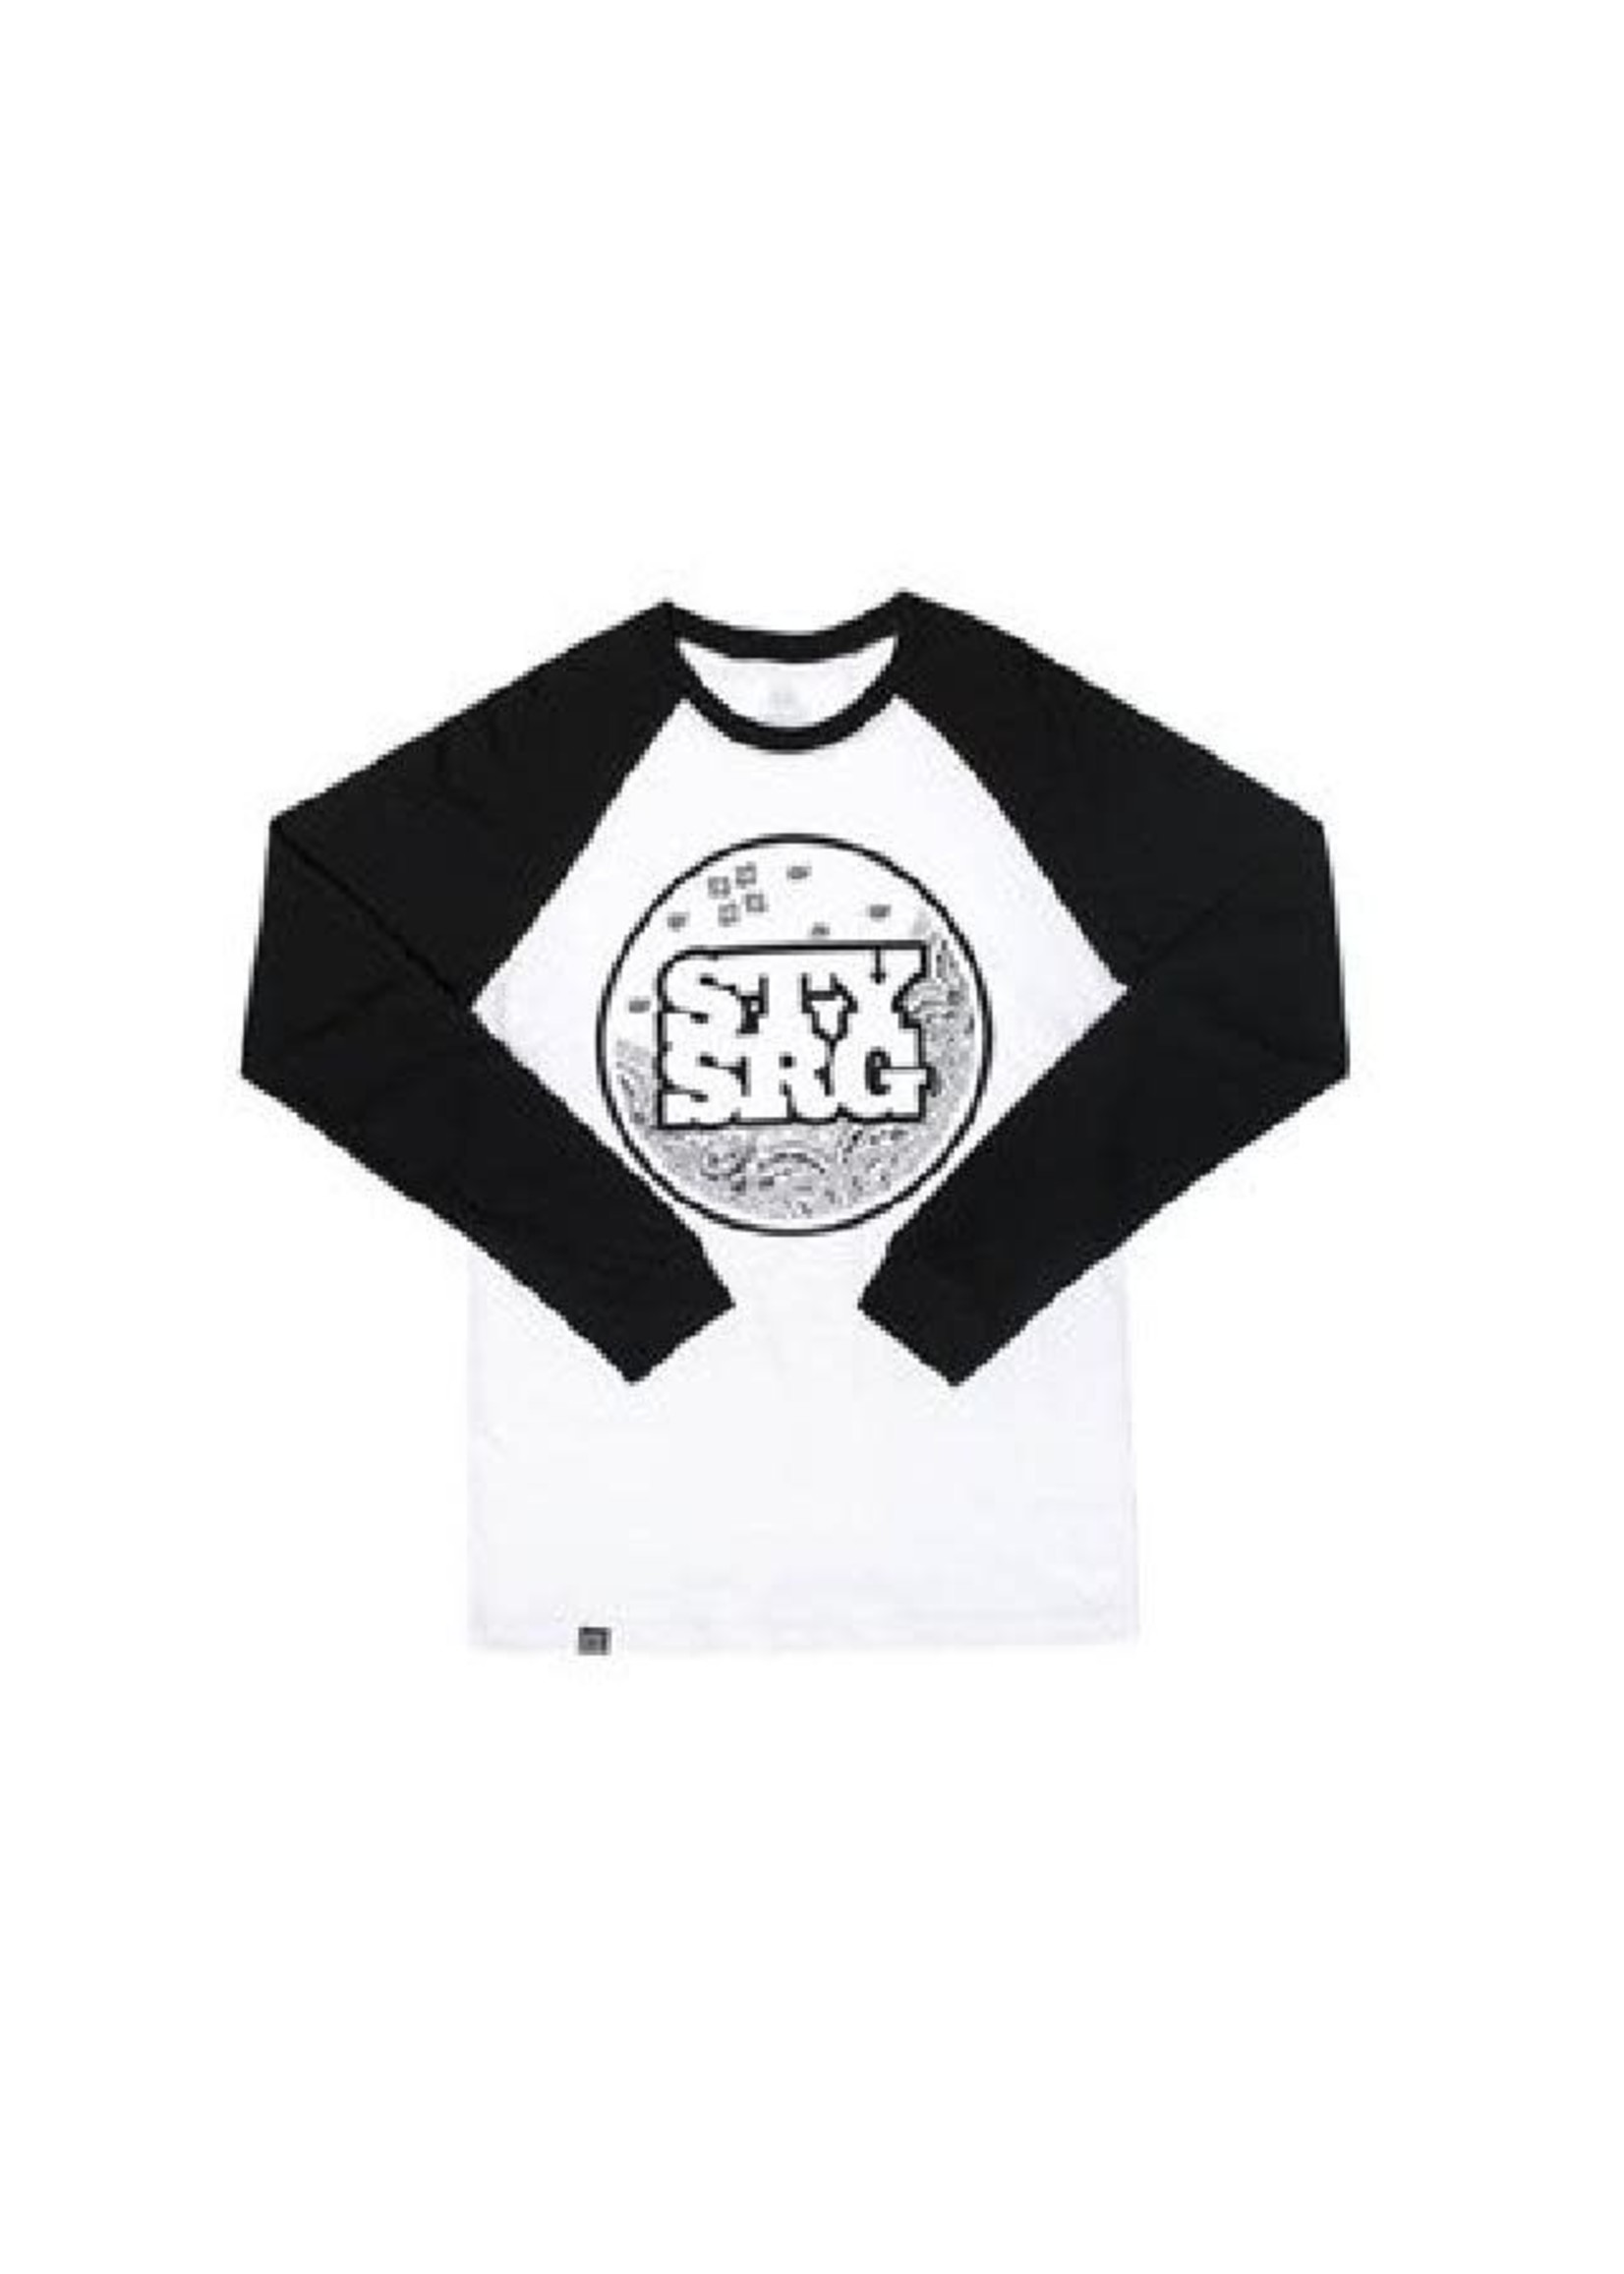 Stay Strong Stay Strong T-Shirt Paisley White/Black